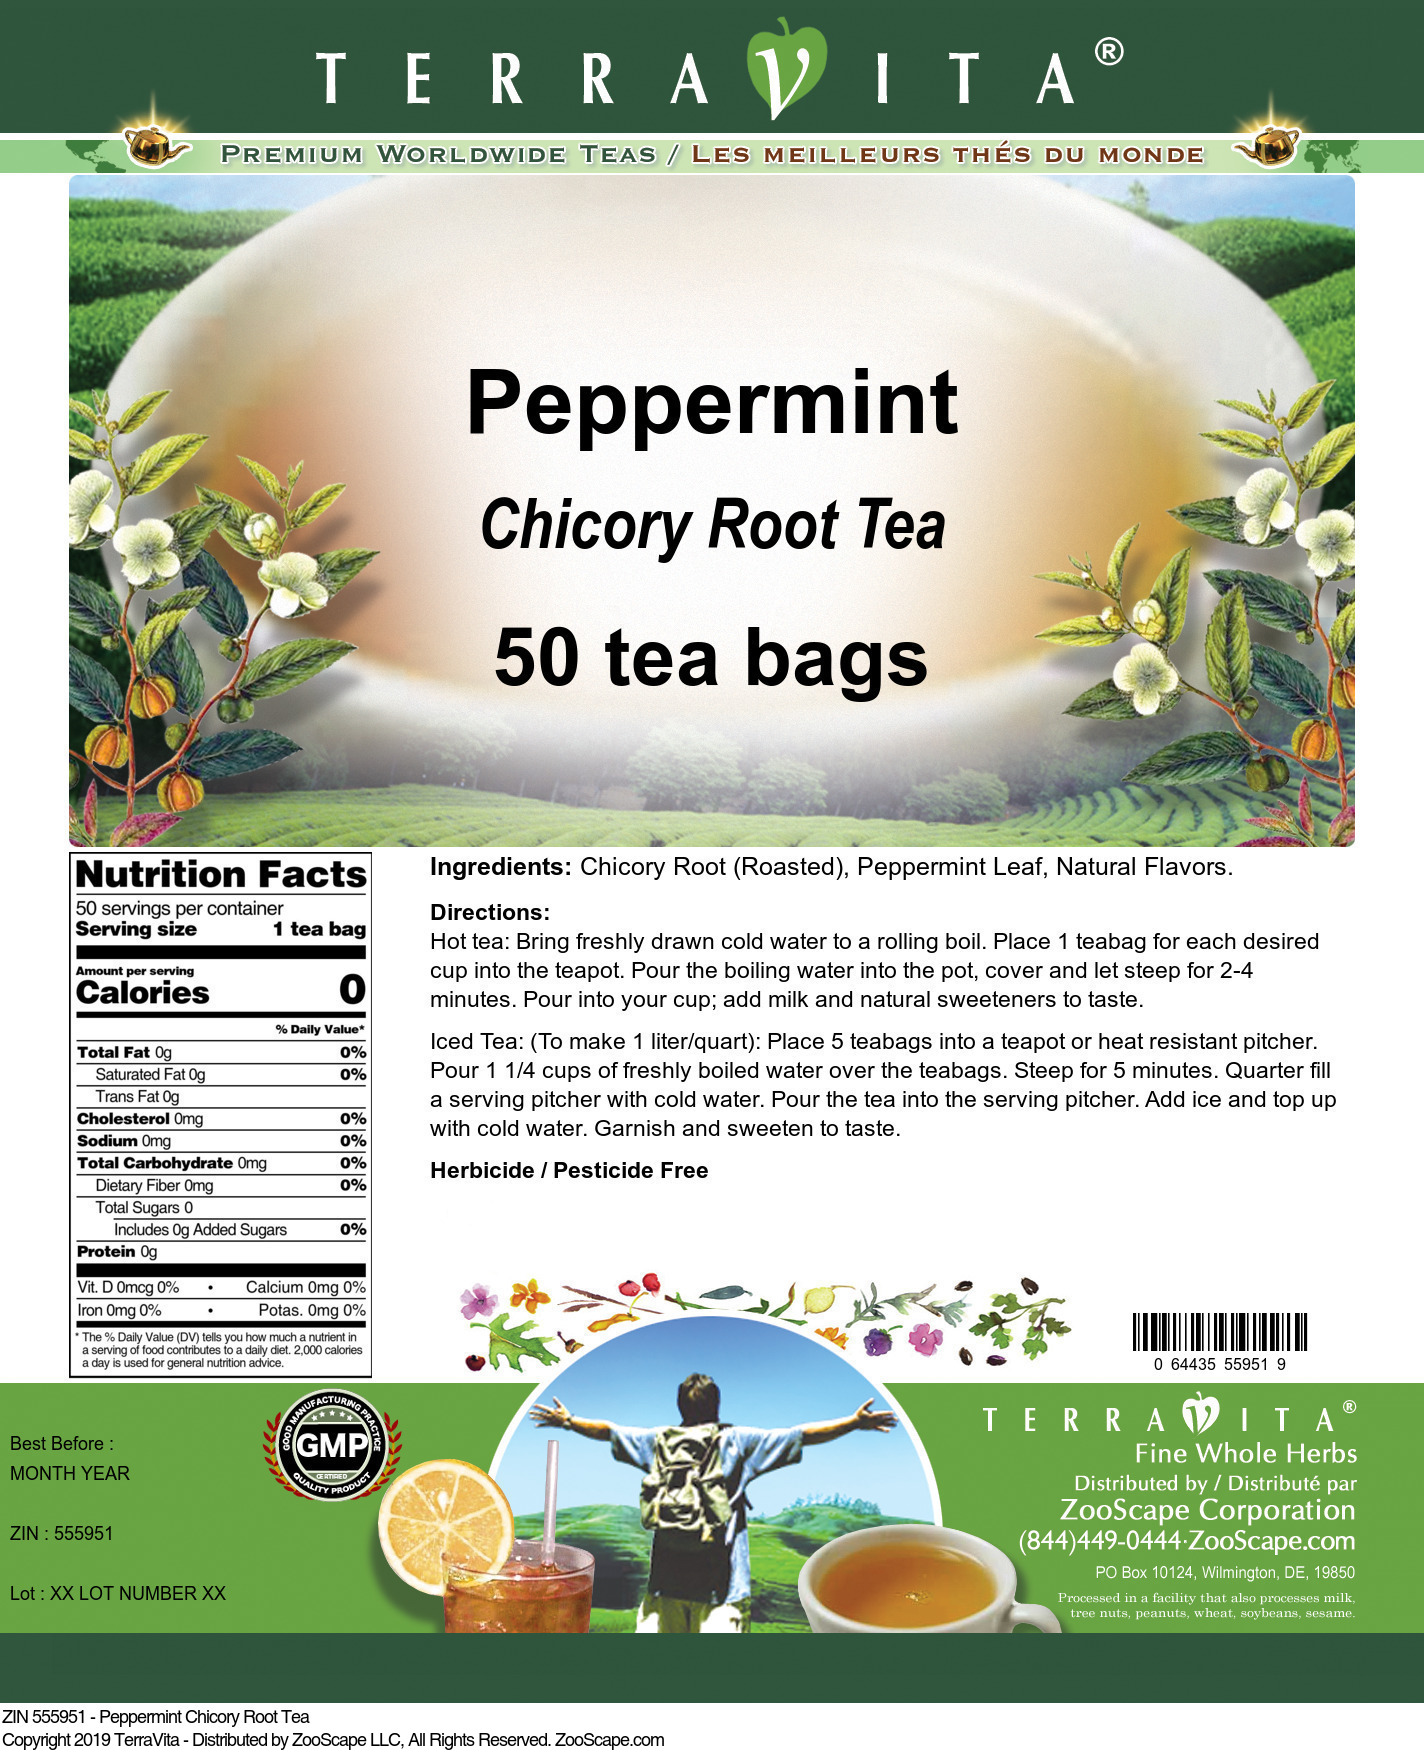 Peppermint Chicory Root Tea